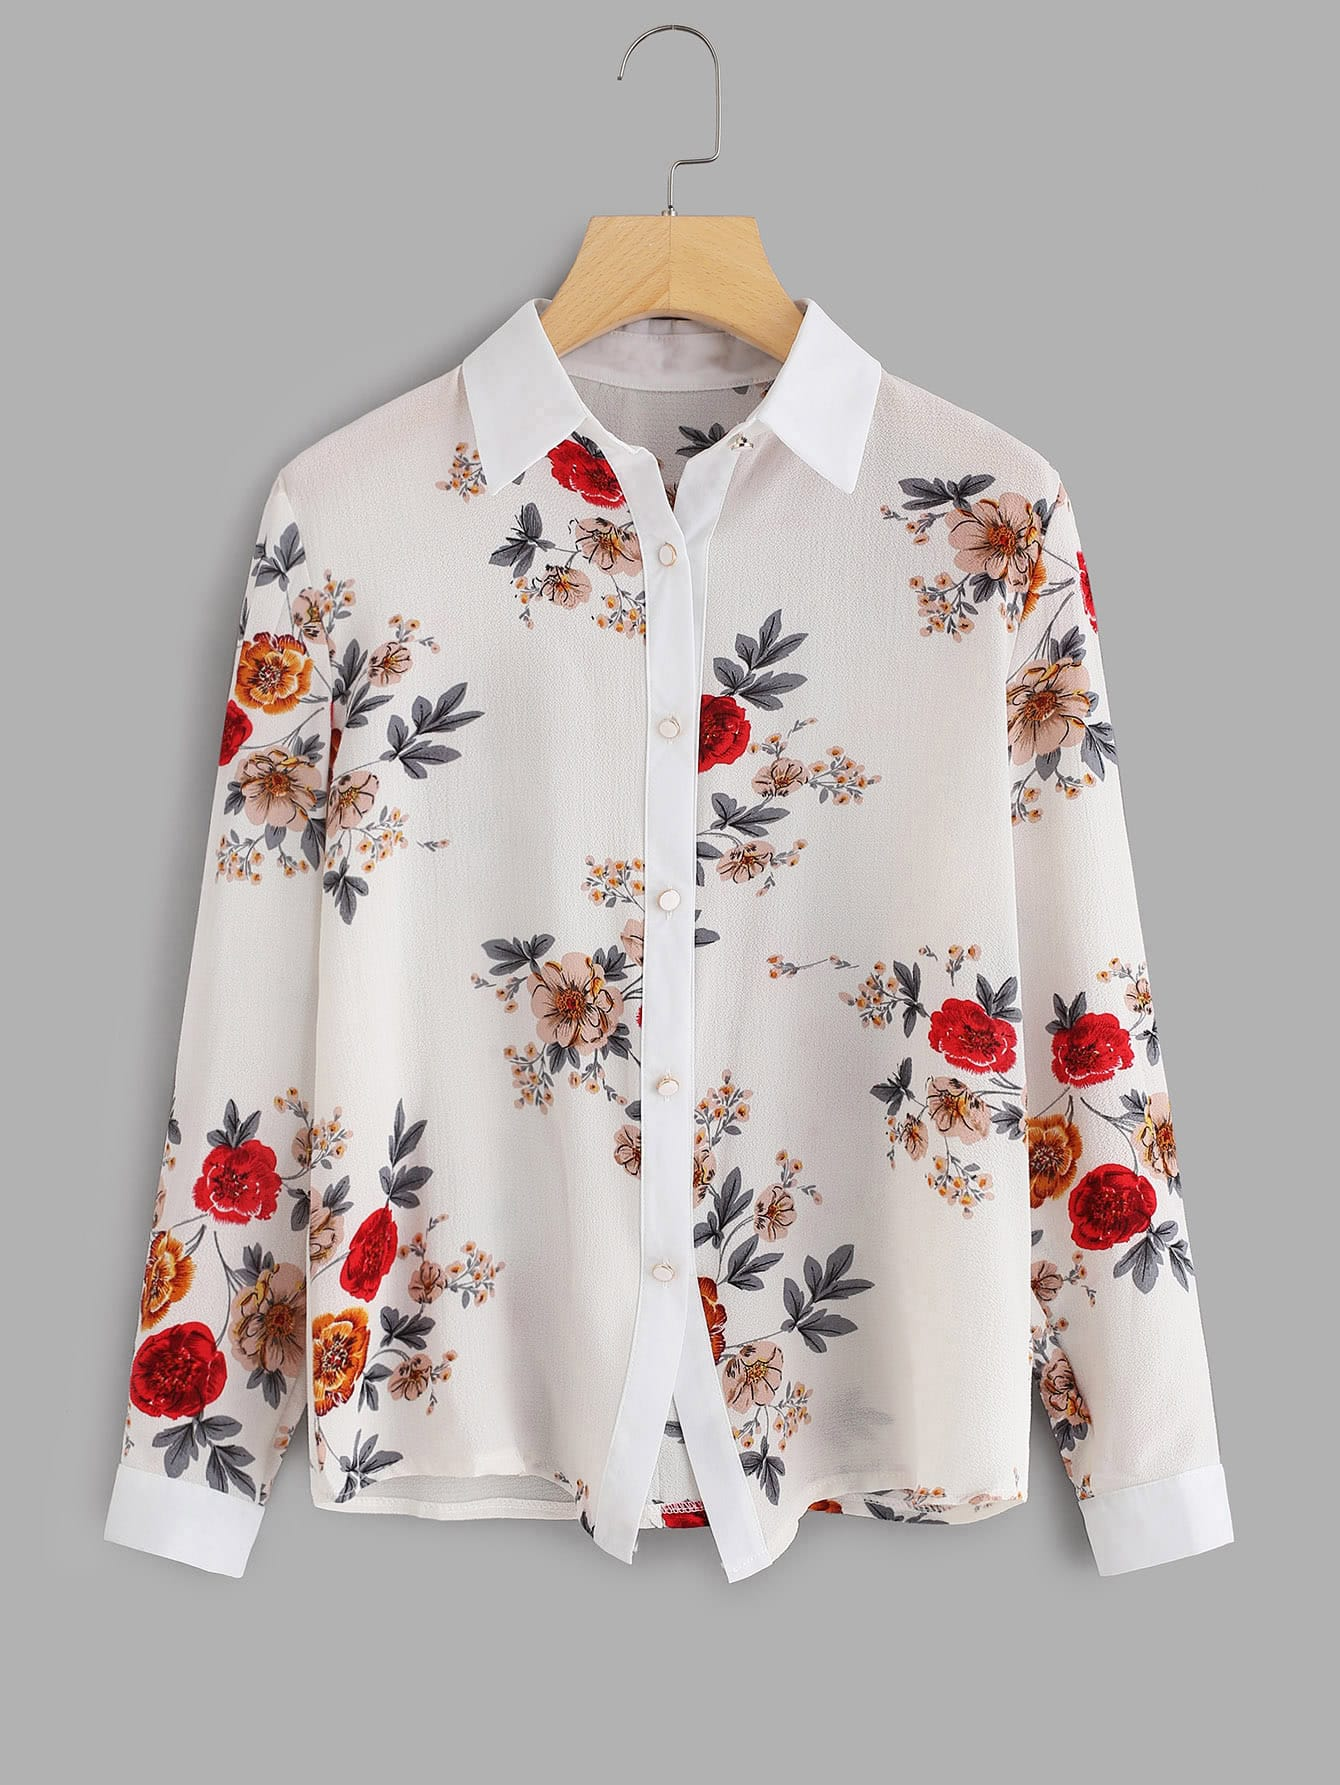 Random Botanical Print Shirt fit 12486